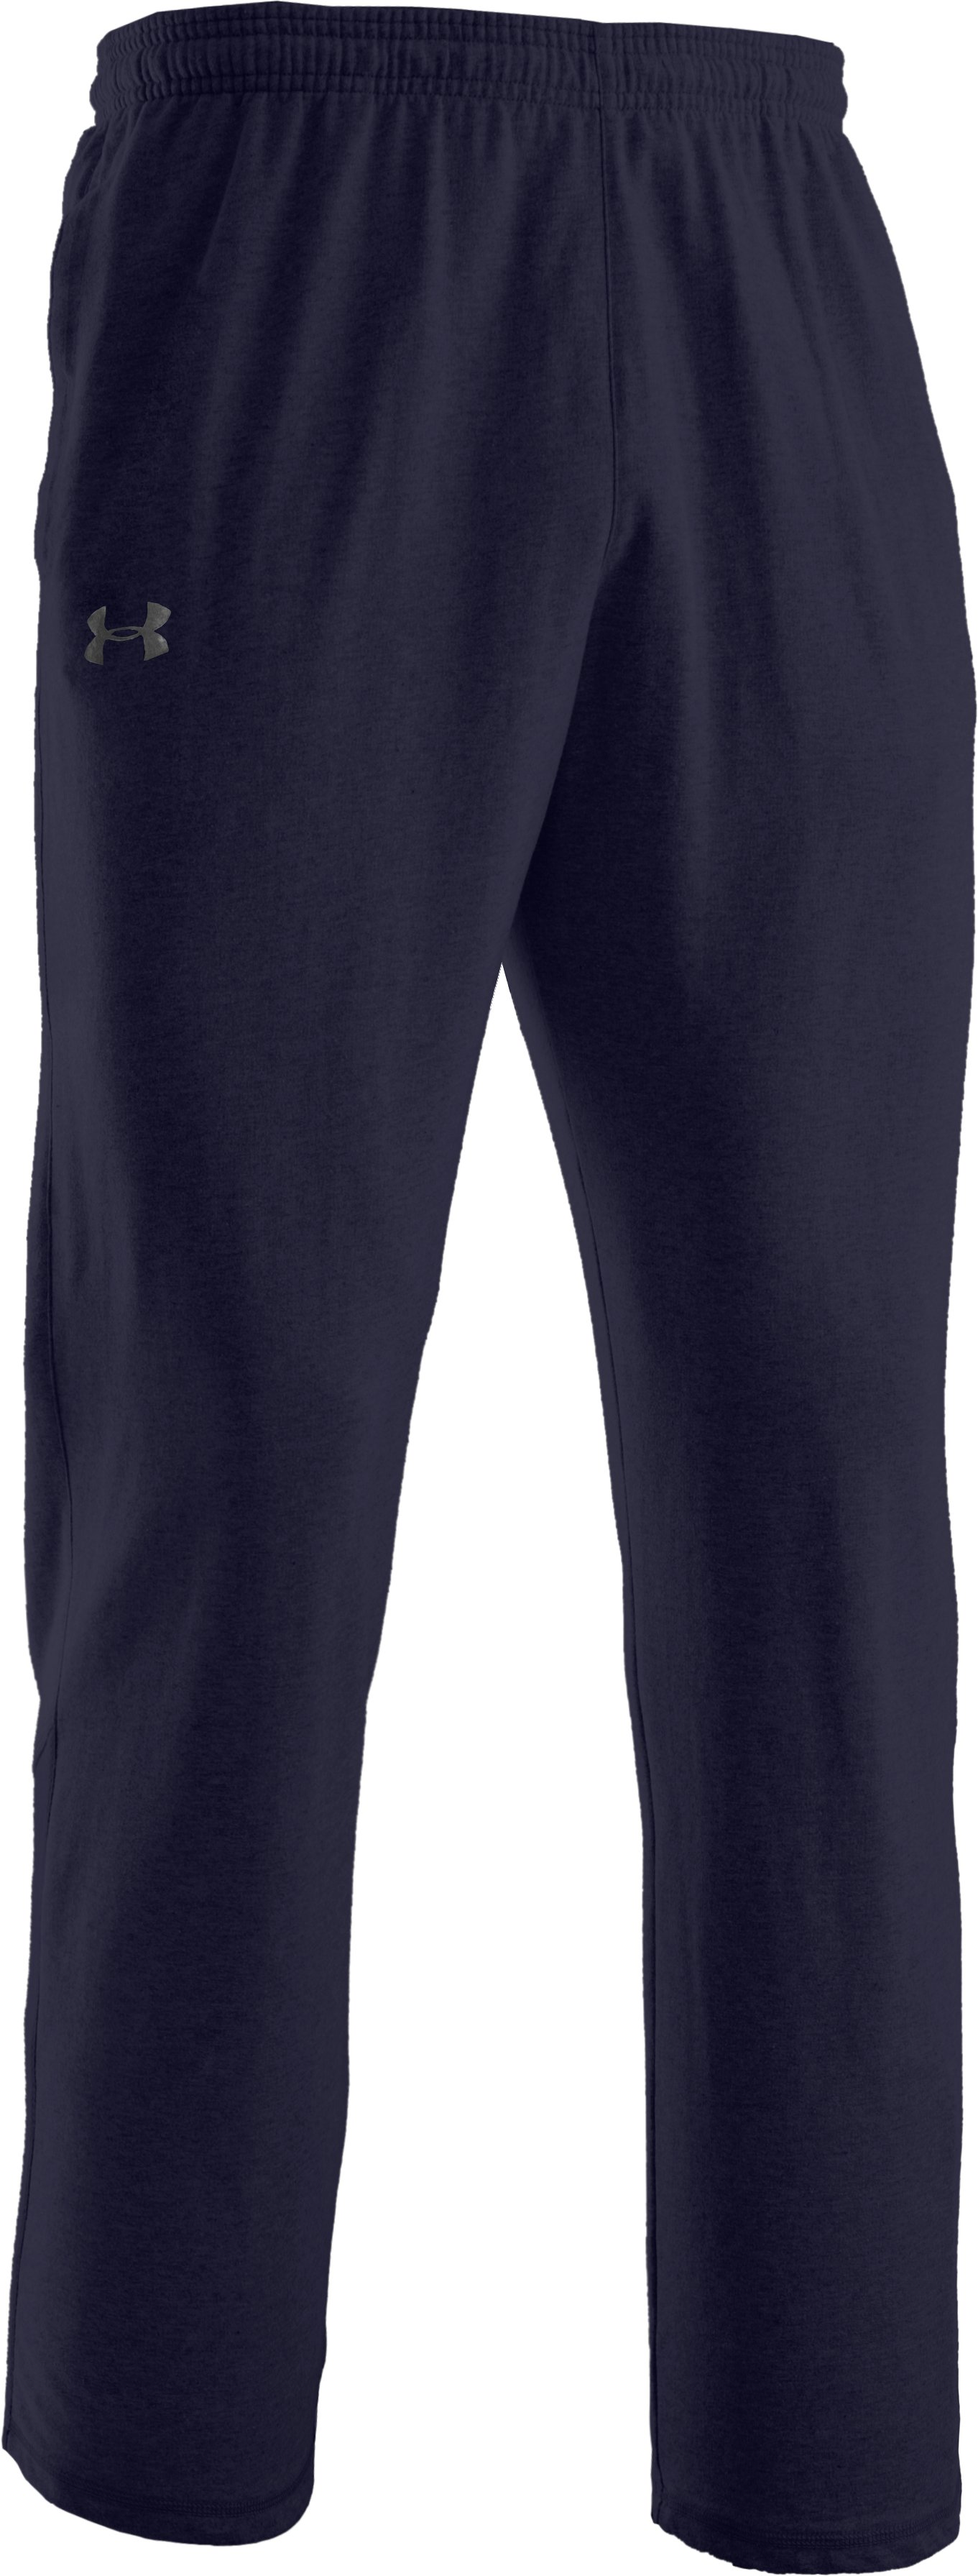 Men's Team Charged Cotton® Storm Pants, Midnight Navy, undefined